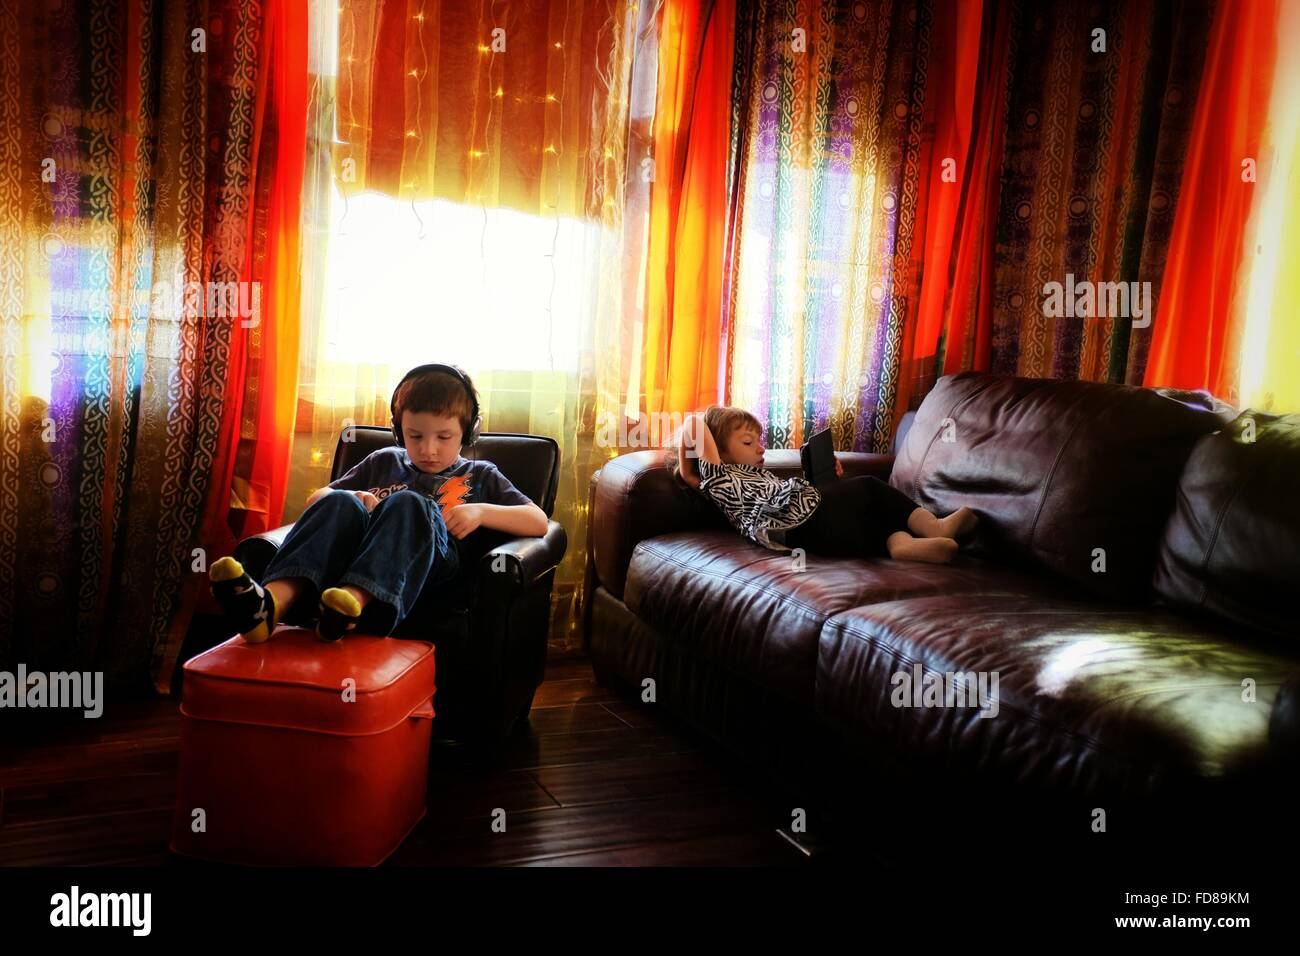 Siblings Relaxing At Home - Stock Image